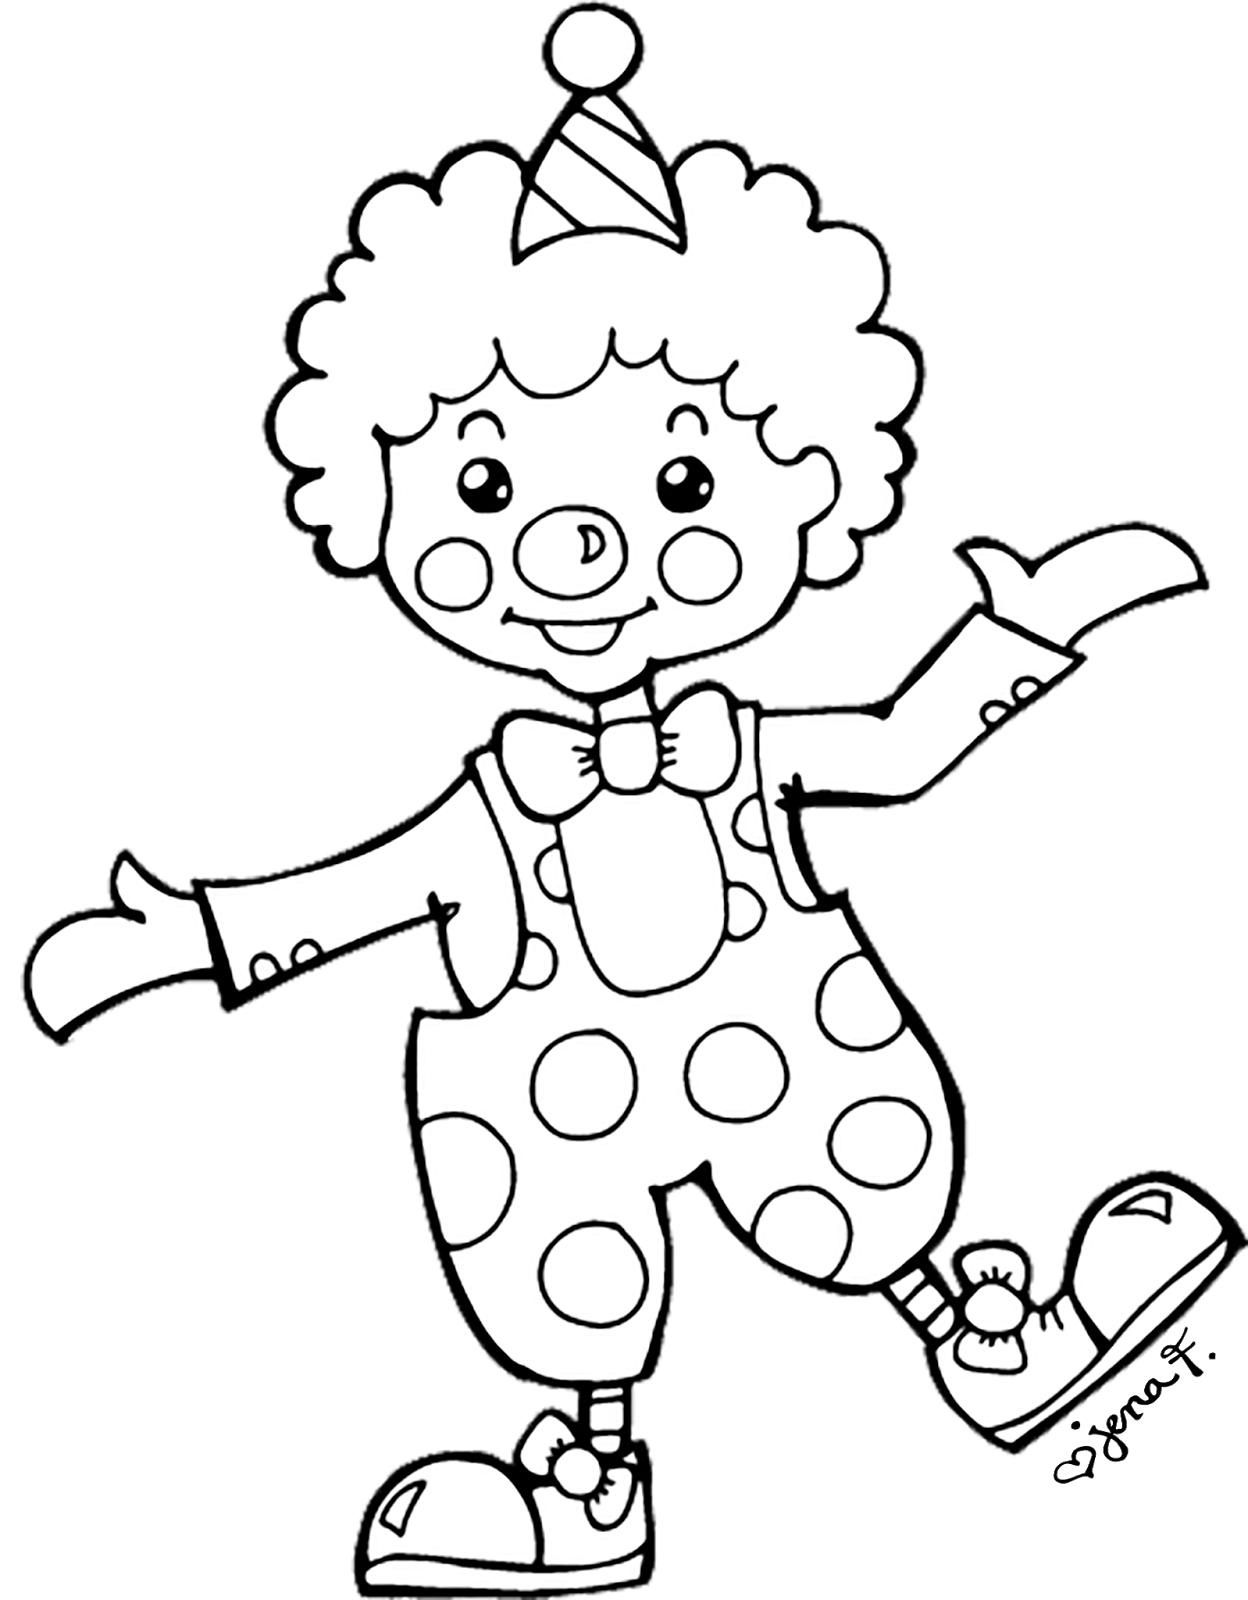 easy clown coloring pages easy clown drawing at getdrawings free download pages easy coloring clown